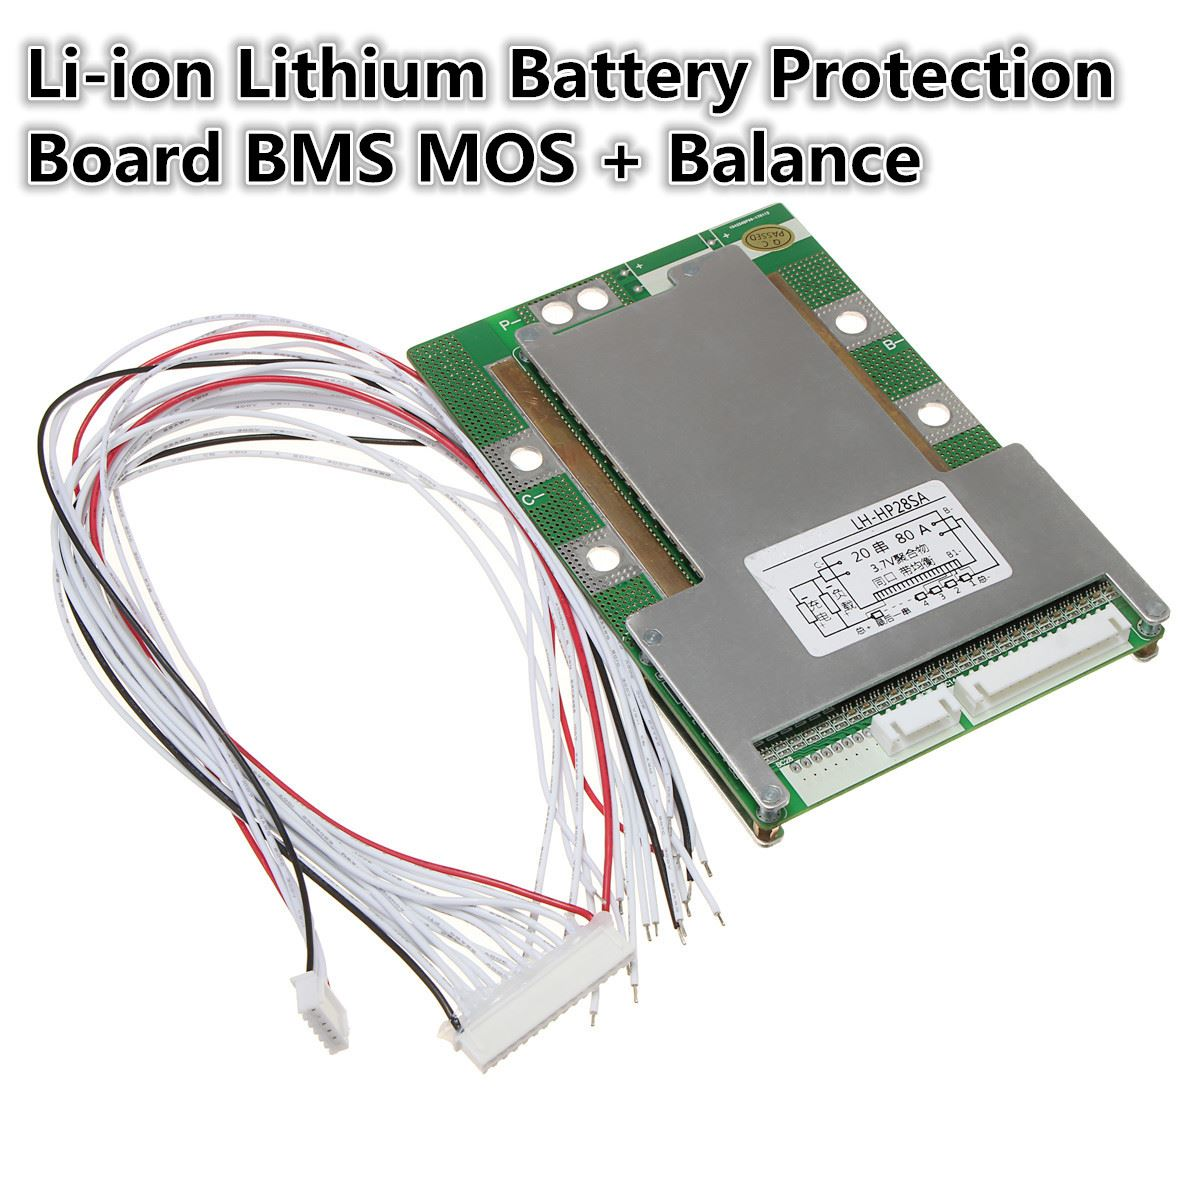 1PC New Arrival 20S 72V(84V) 80A 18650 Li ion Lithium Battery Protection Board BMS MOS + Balance Module